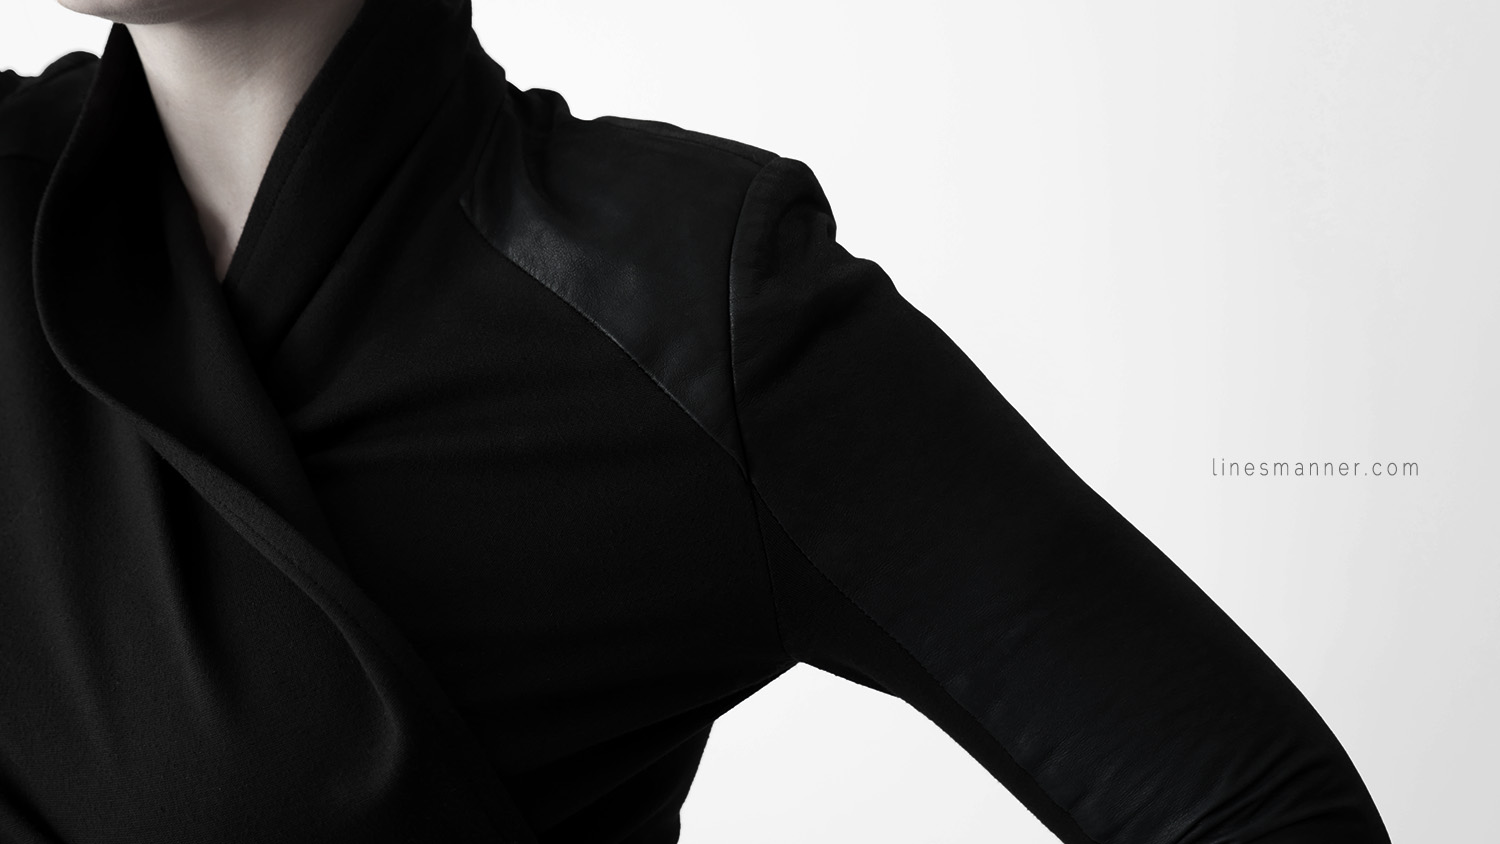 Lines-Manner-Remind-2015-Minimal-Essential-Outfit-Inspiration-Blog-Timeless-Year-Seasons-Details-Travel-Fashion-Versatile-Clean-Sleek-Quality-39